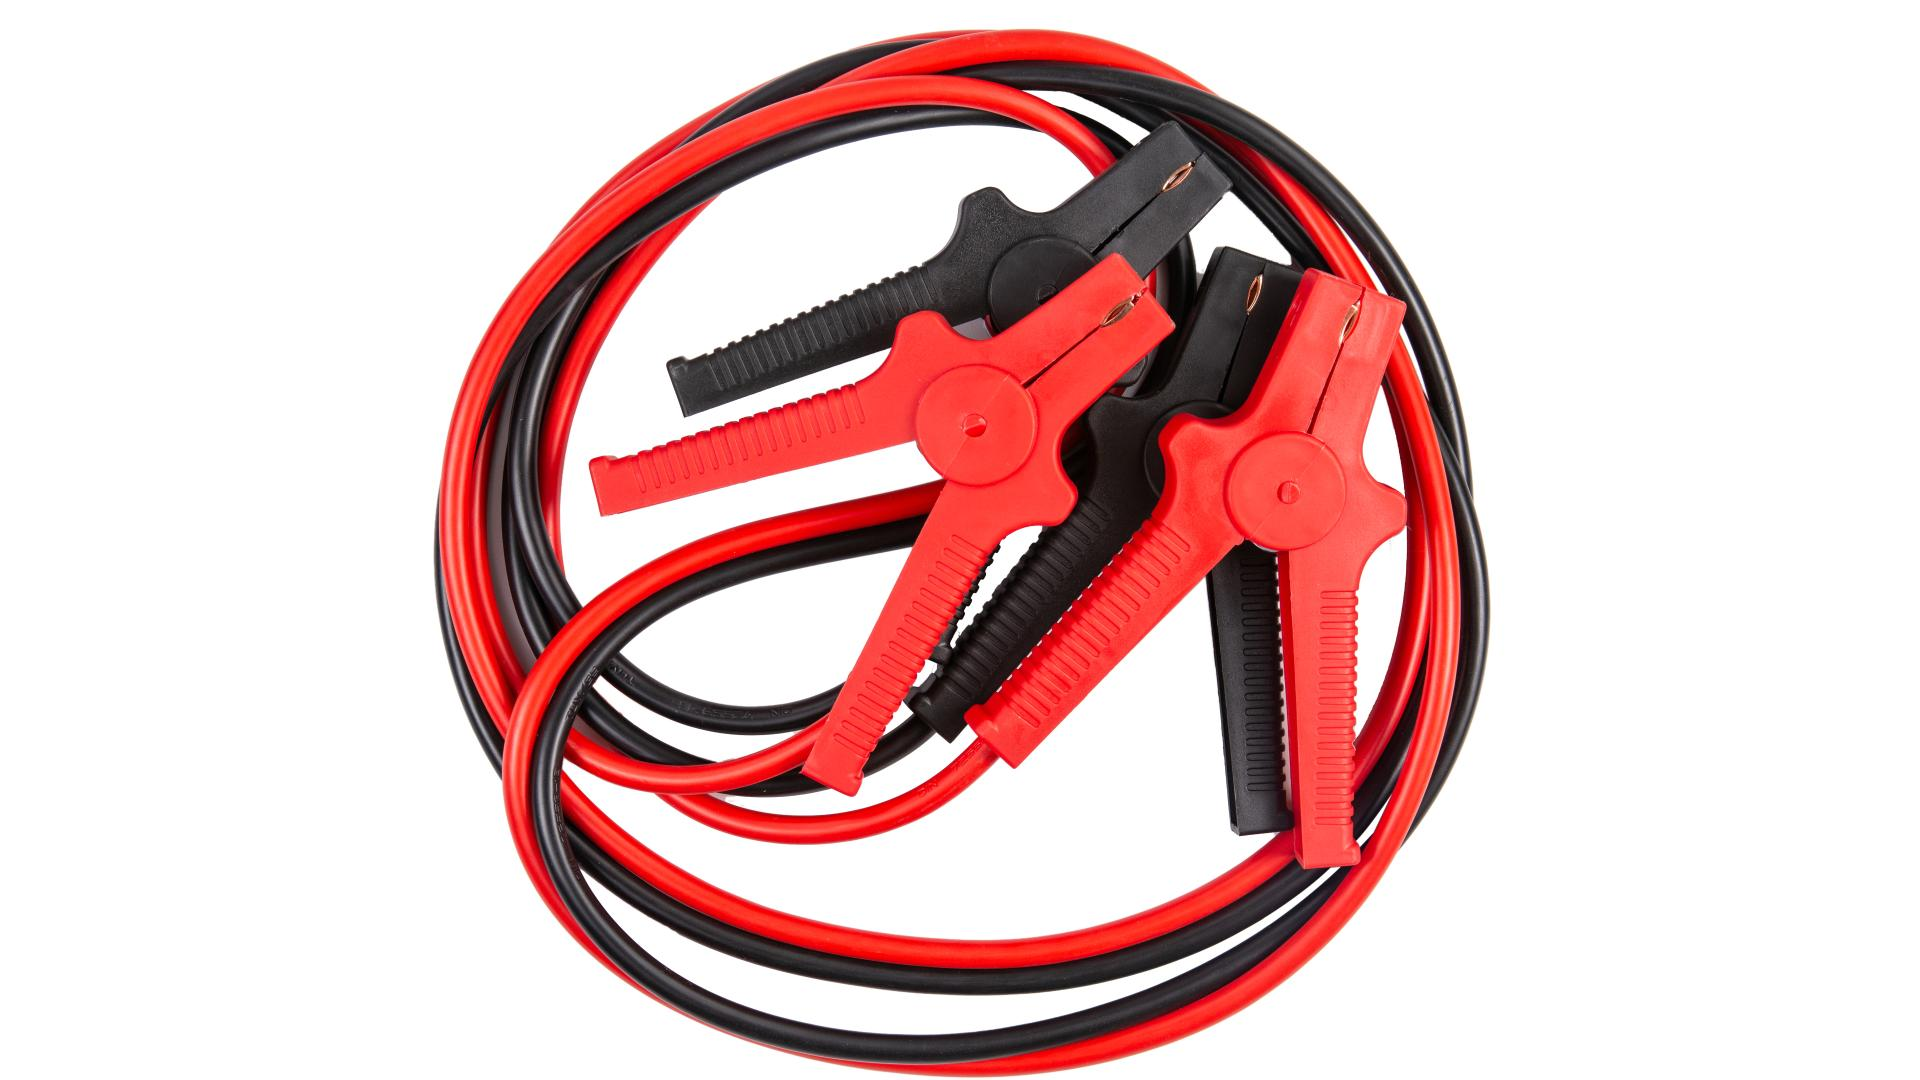 4 CARS Premium Jump start cable - DIN 72553 - Isolated clamps, thisckness 16.0MM², 3meters